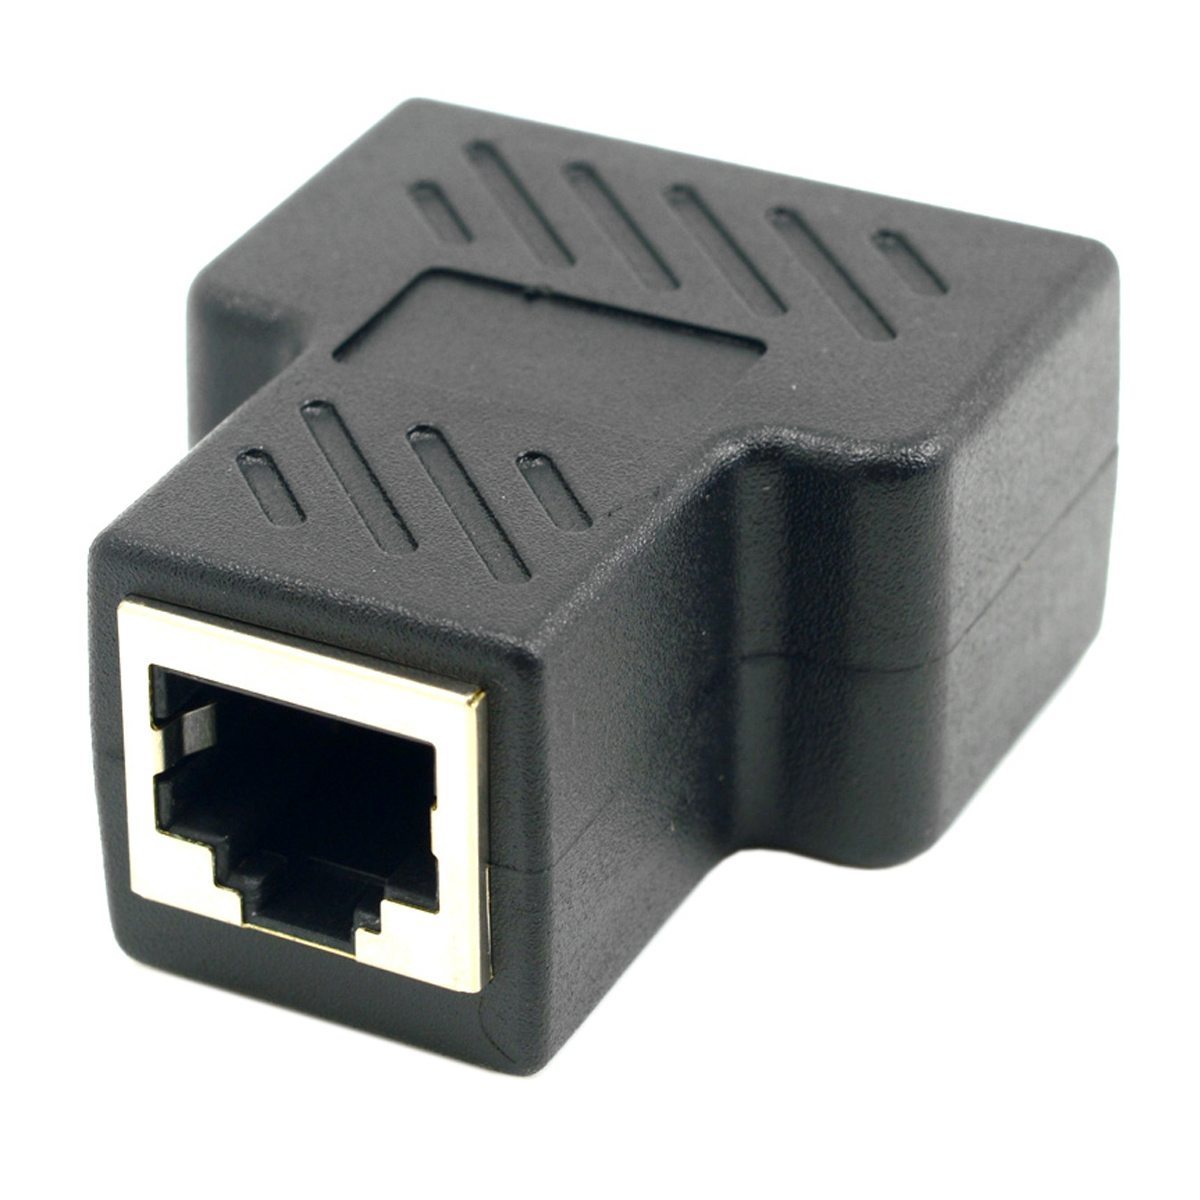 Network Splitter Cat6 RJ45 8P8C Plug to Dual RJ45 Ethernet Patch Cord Adapter